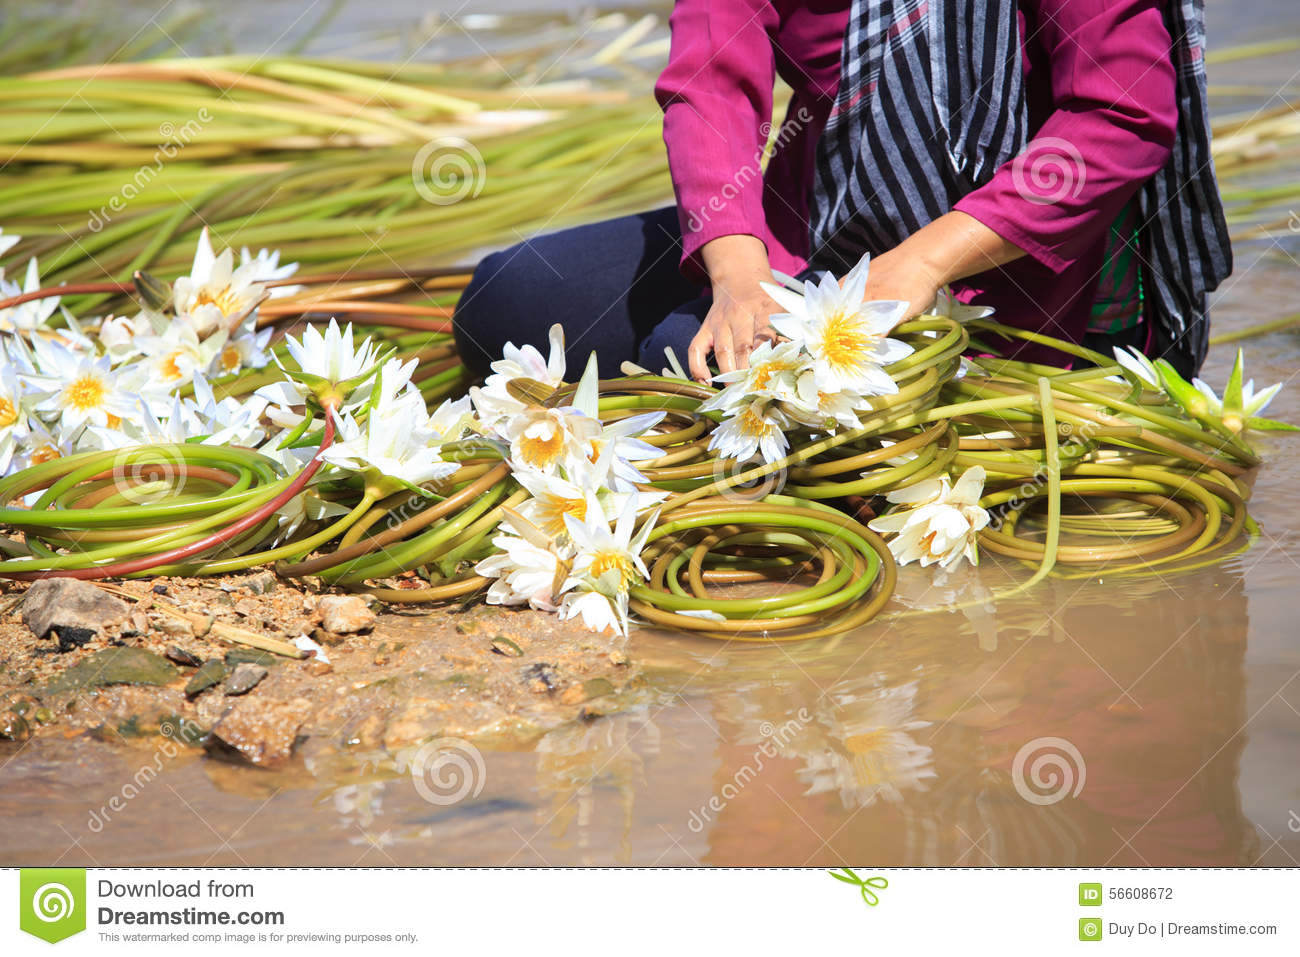 Water lily flowers nymphaea prepared in roll for sale stock photo water lily flowers nymphaea prepared in roll for sale stock photo image of natural nymphaea 56608672 izmirmasajfo